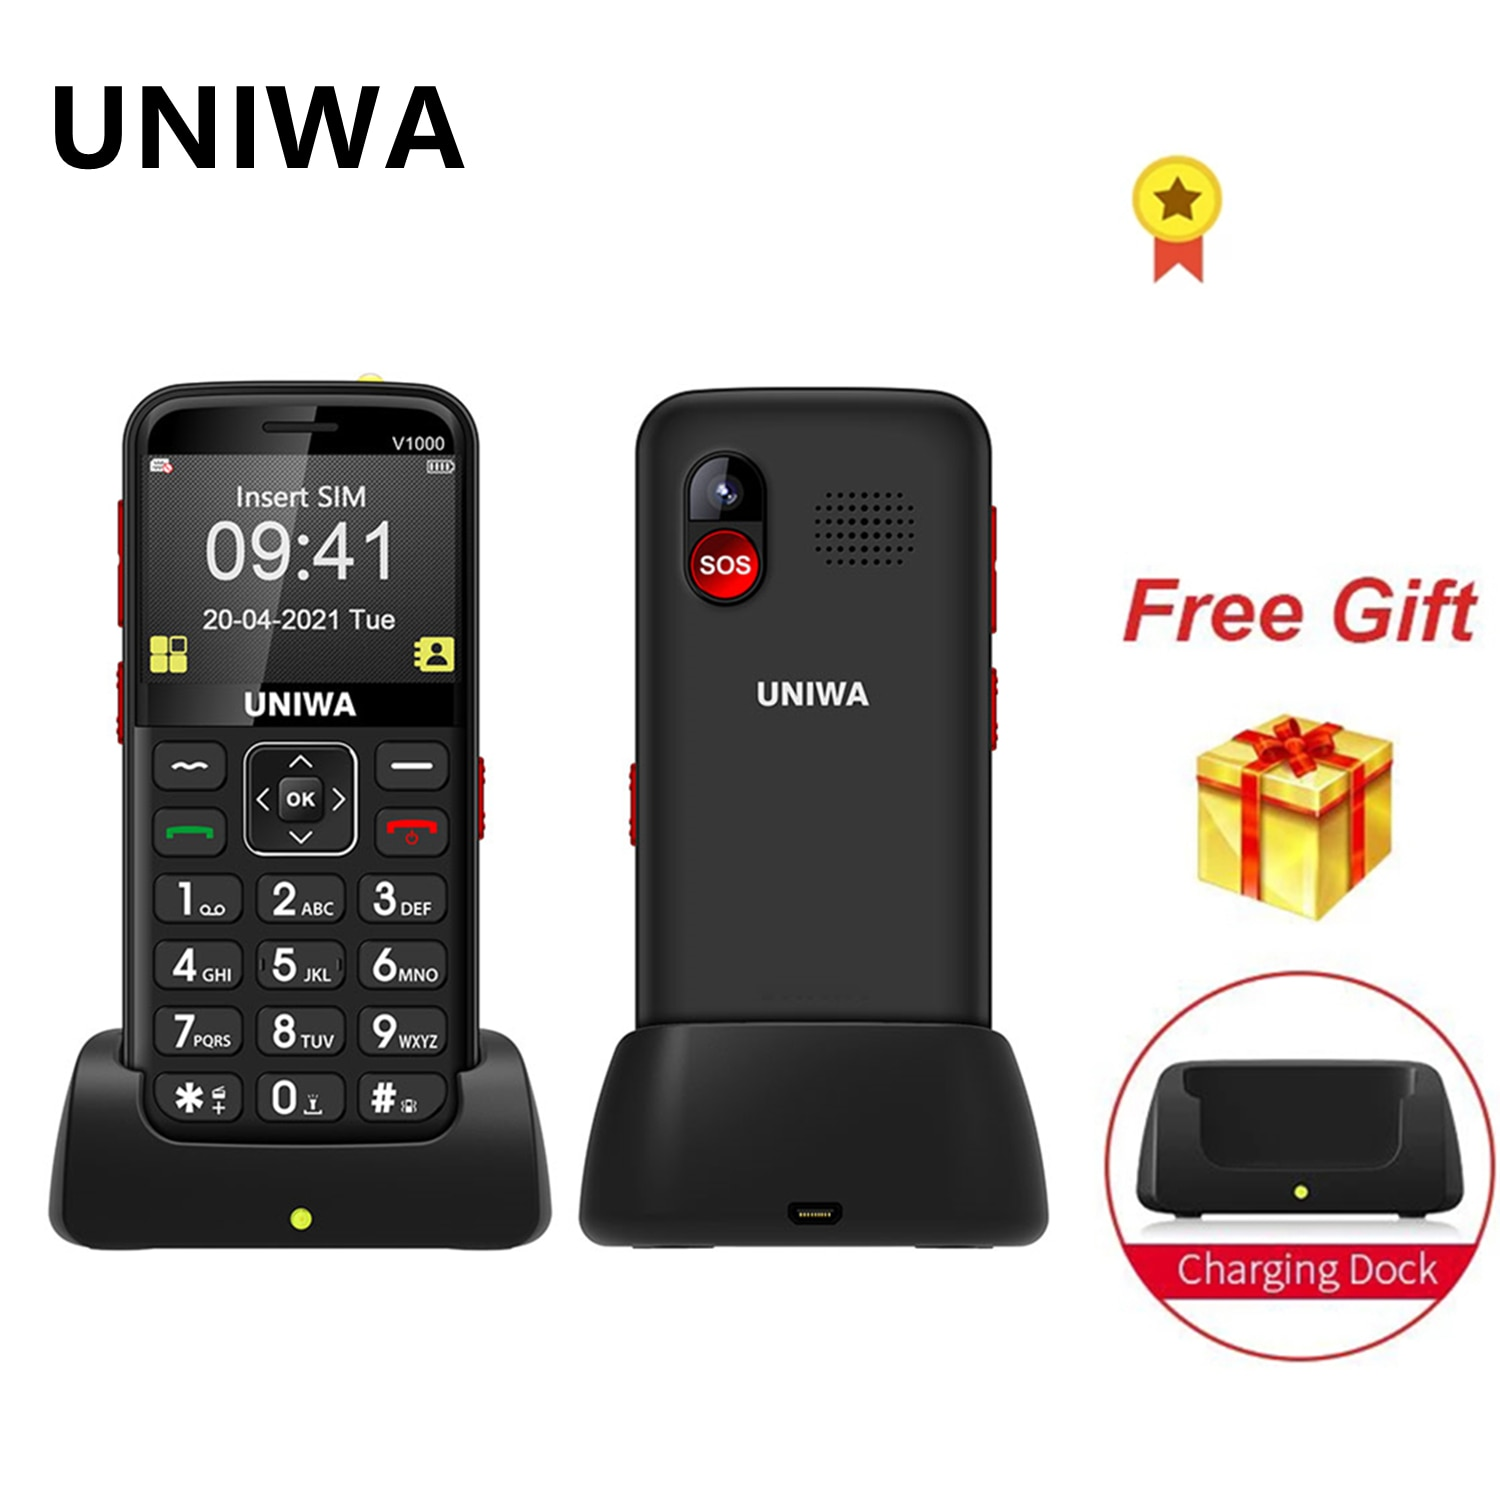 UNIWA V1000 Mobile Phone 2.31inch 4G LET Big Button Feature Phone Bluetooth Flashlight 1700mAh Russian Hebrew Keyboard Cellphone